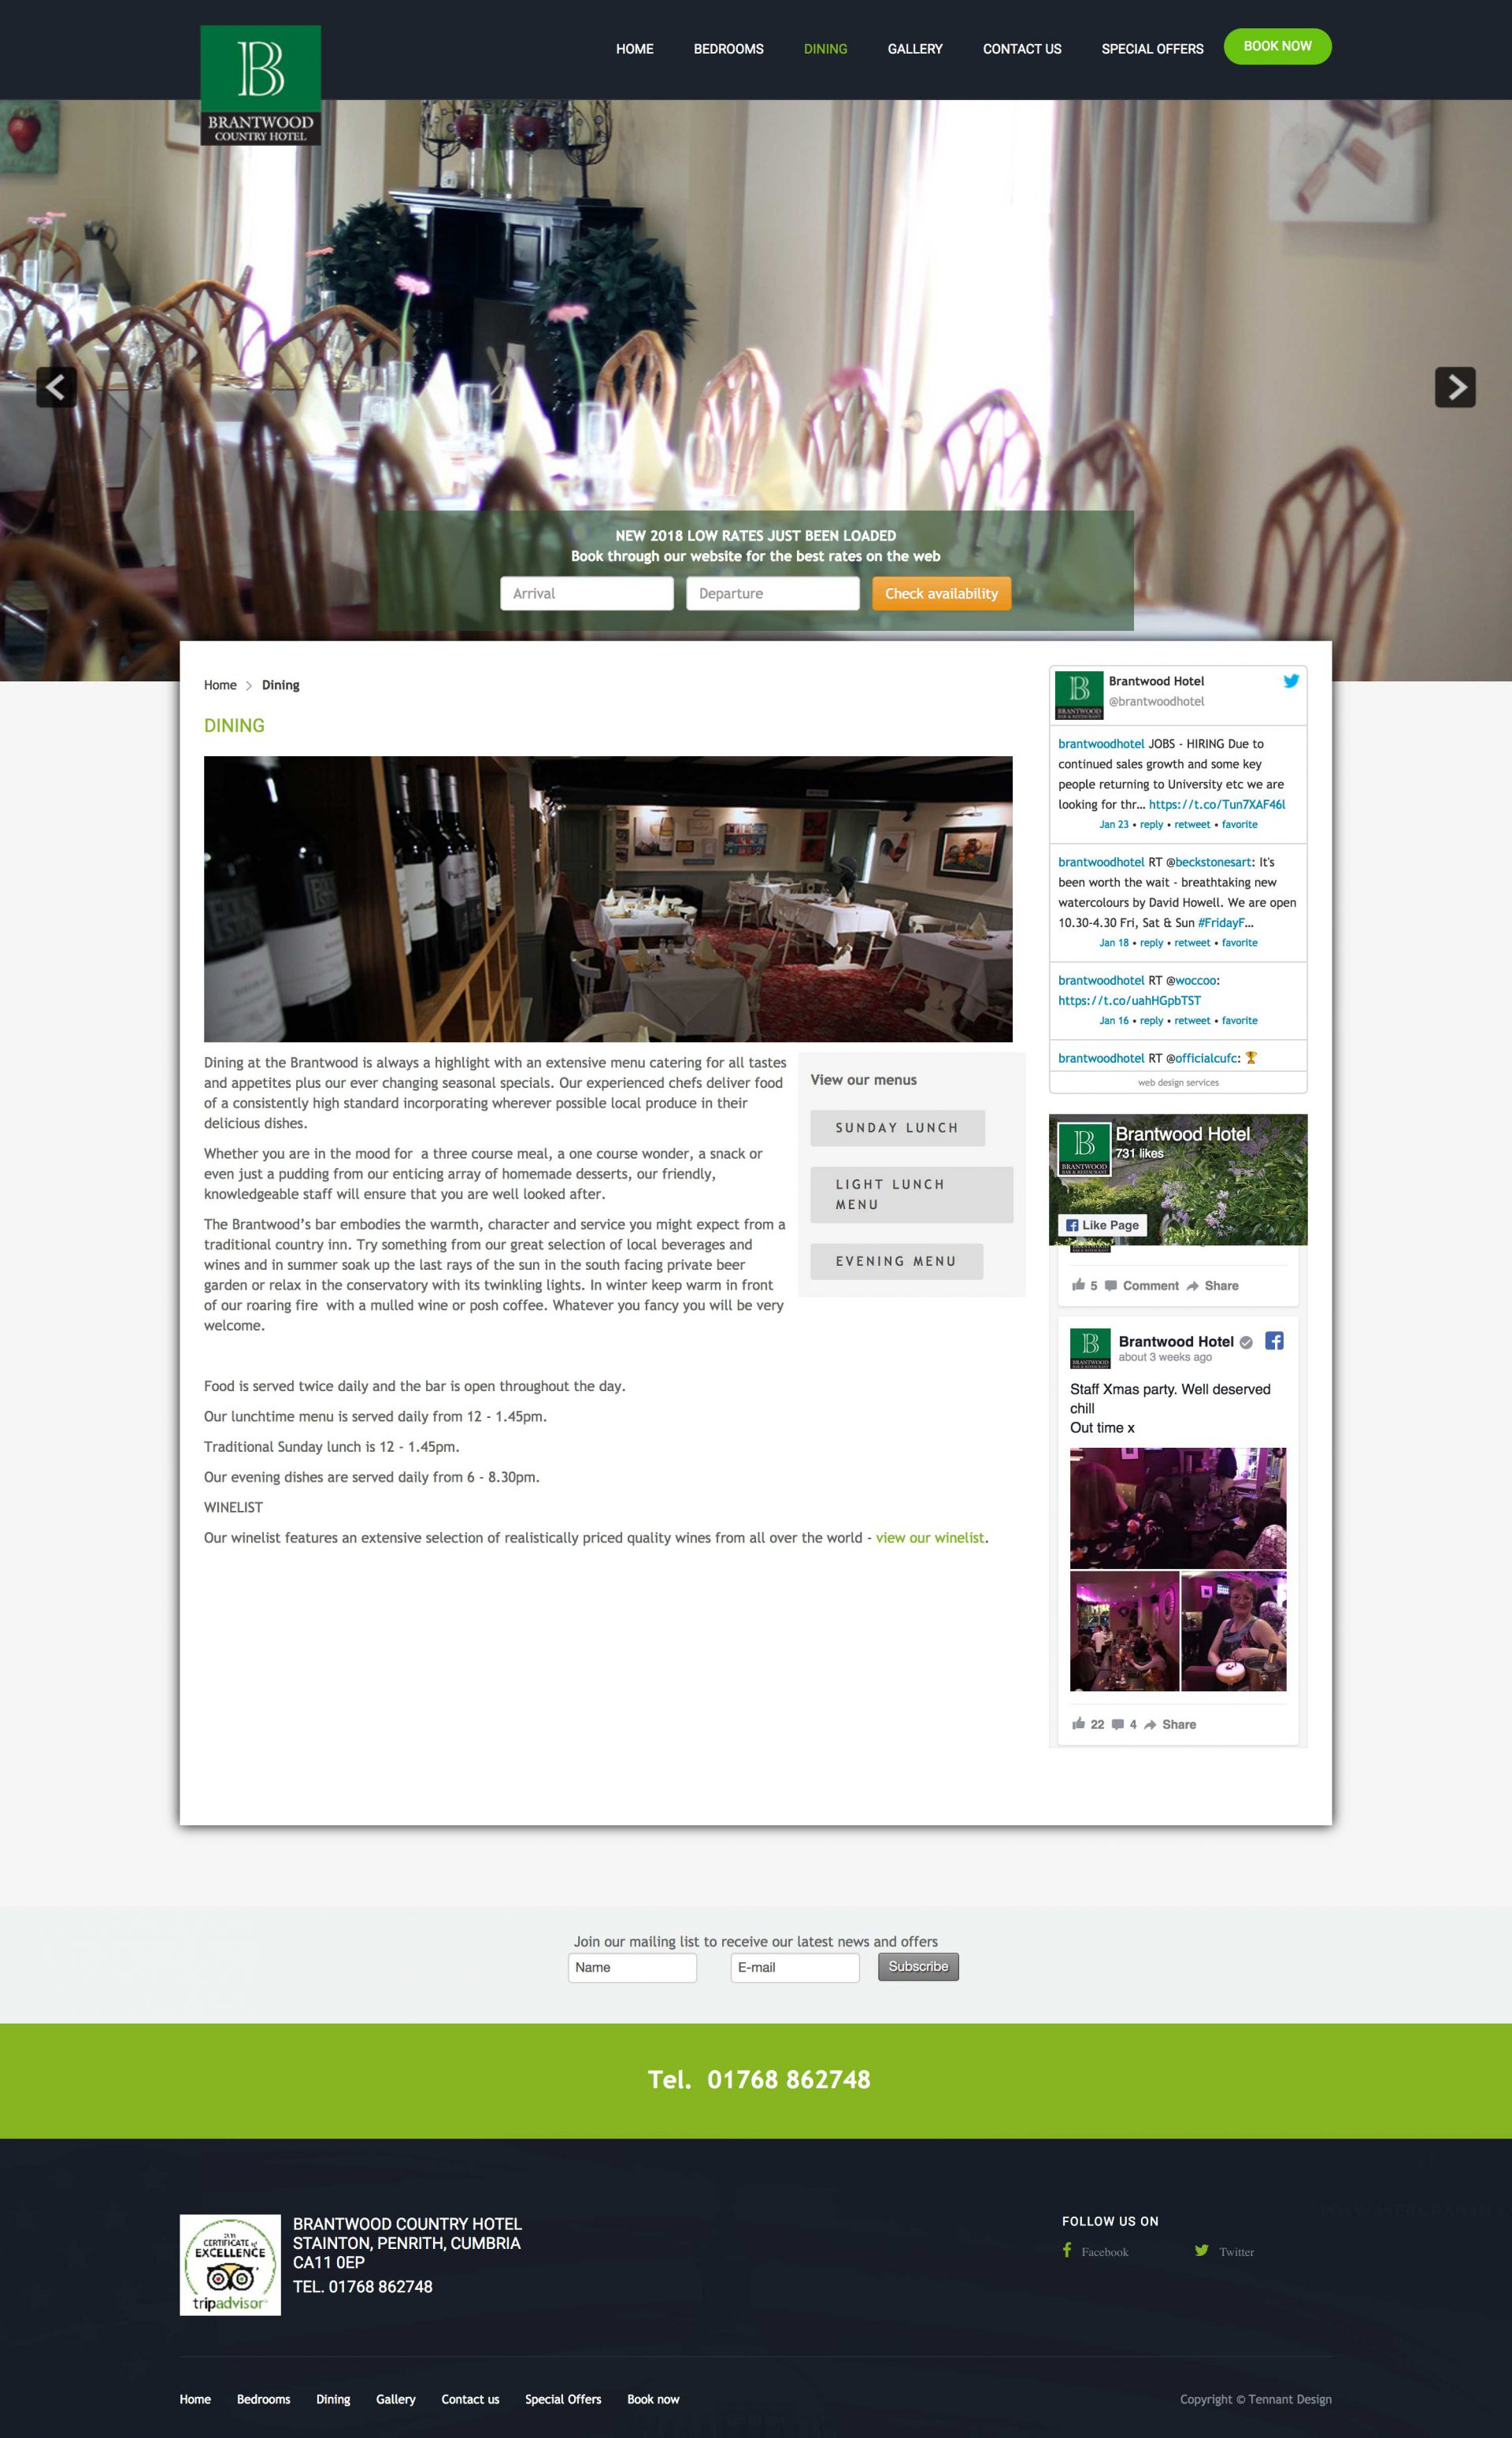 website design - The Brantwood Hotel, dining